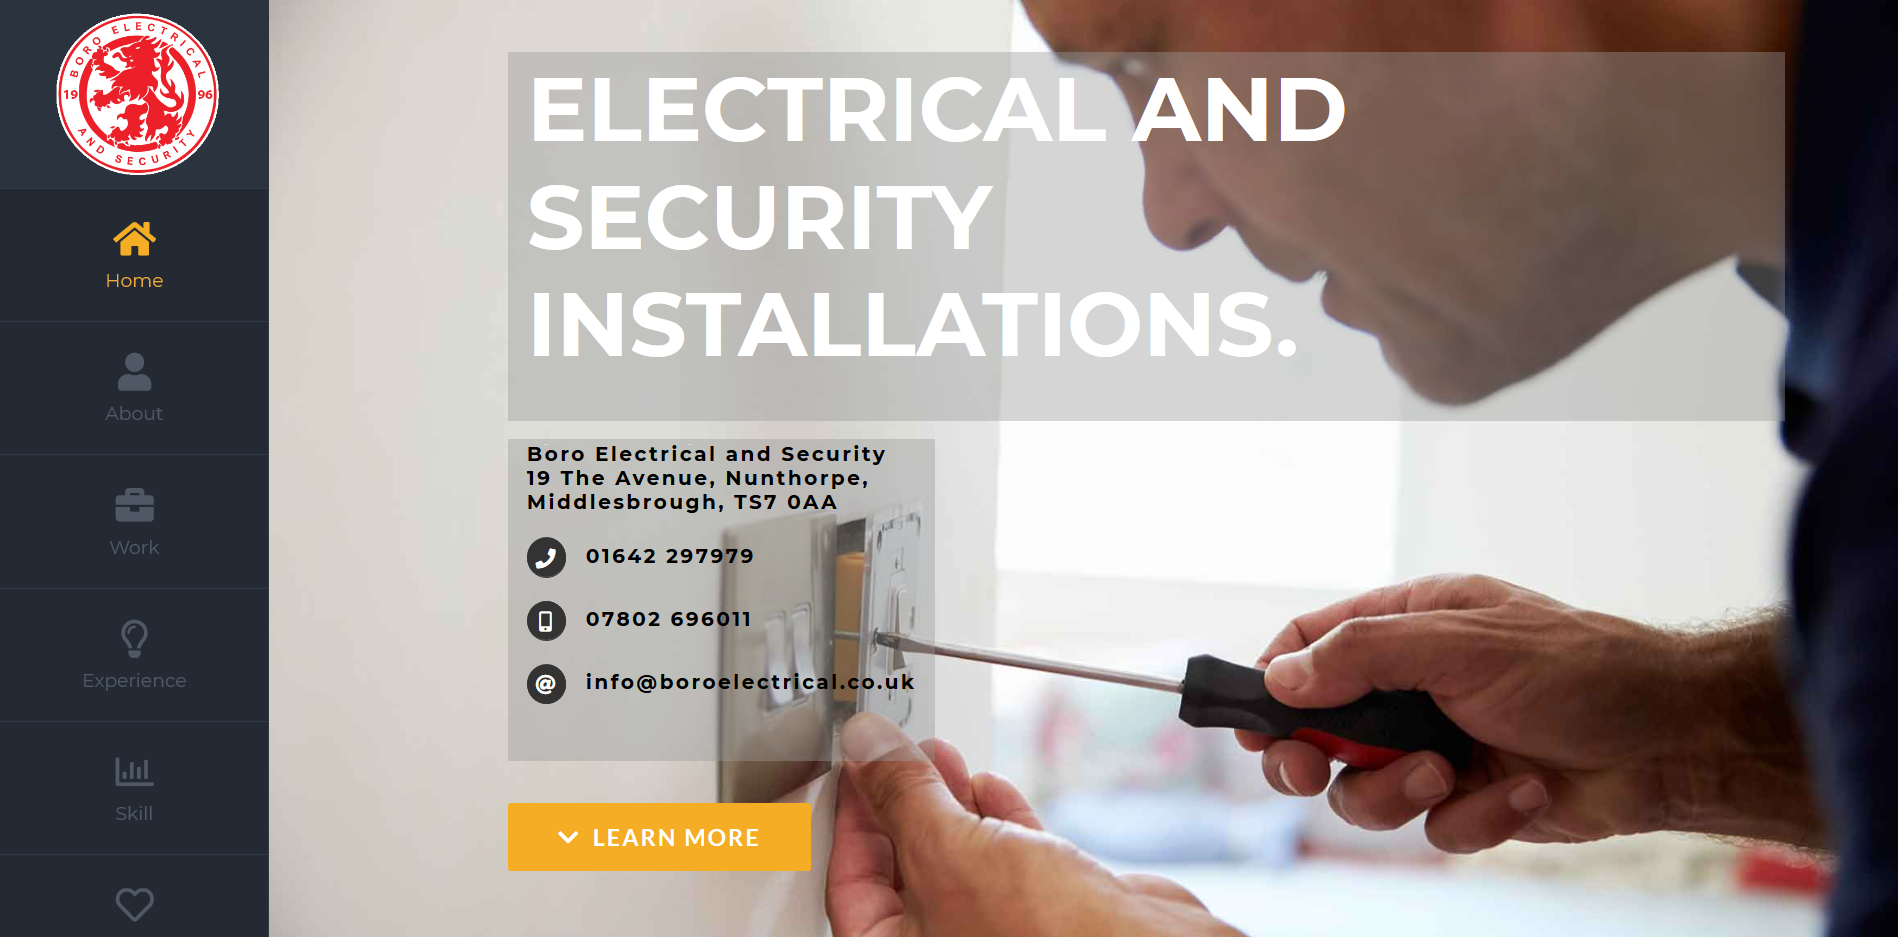 Boro electrical and security installations